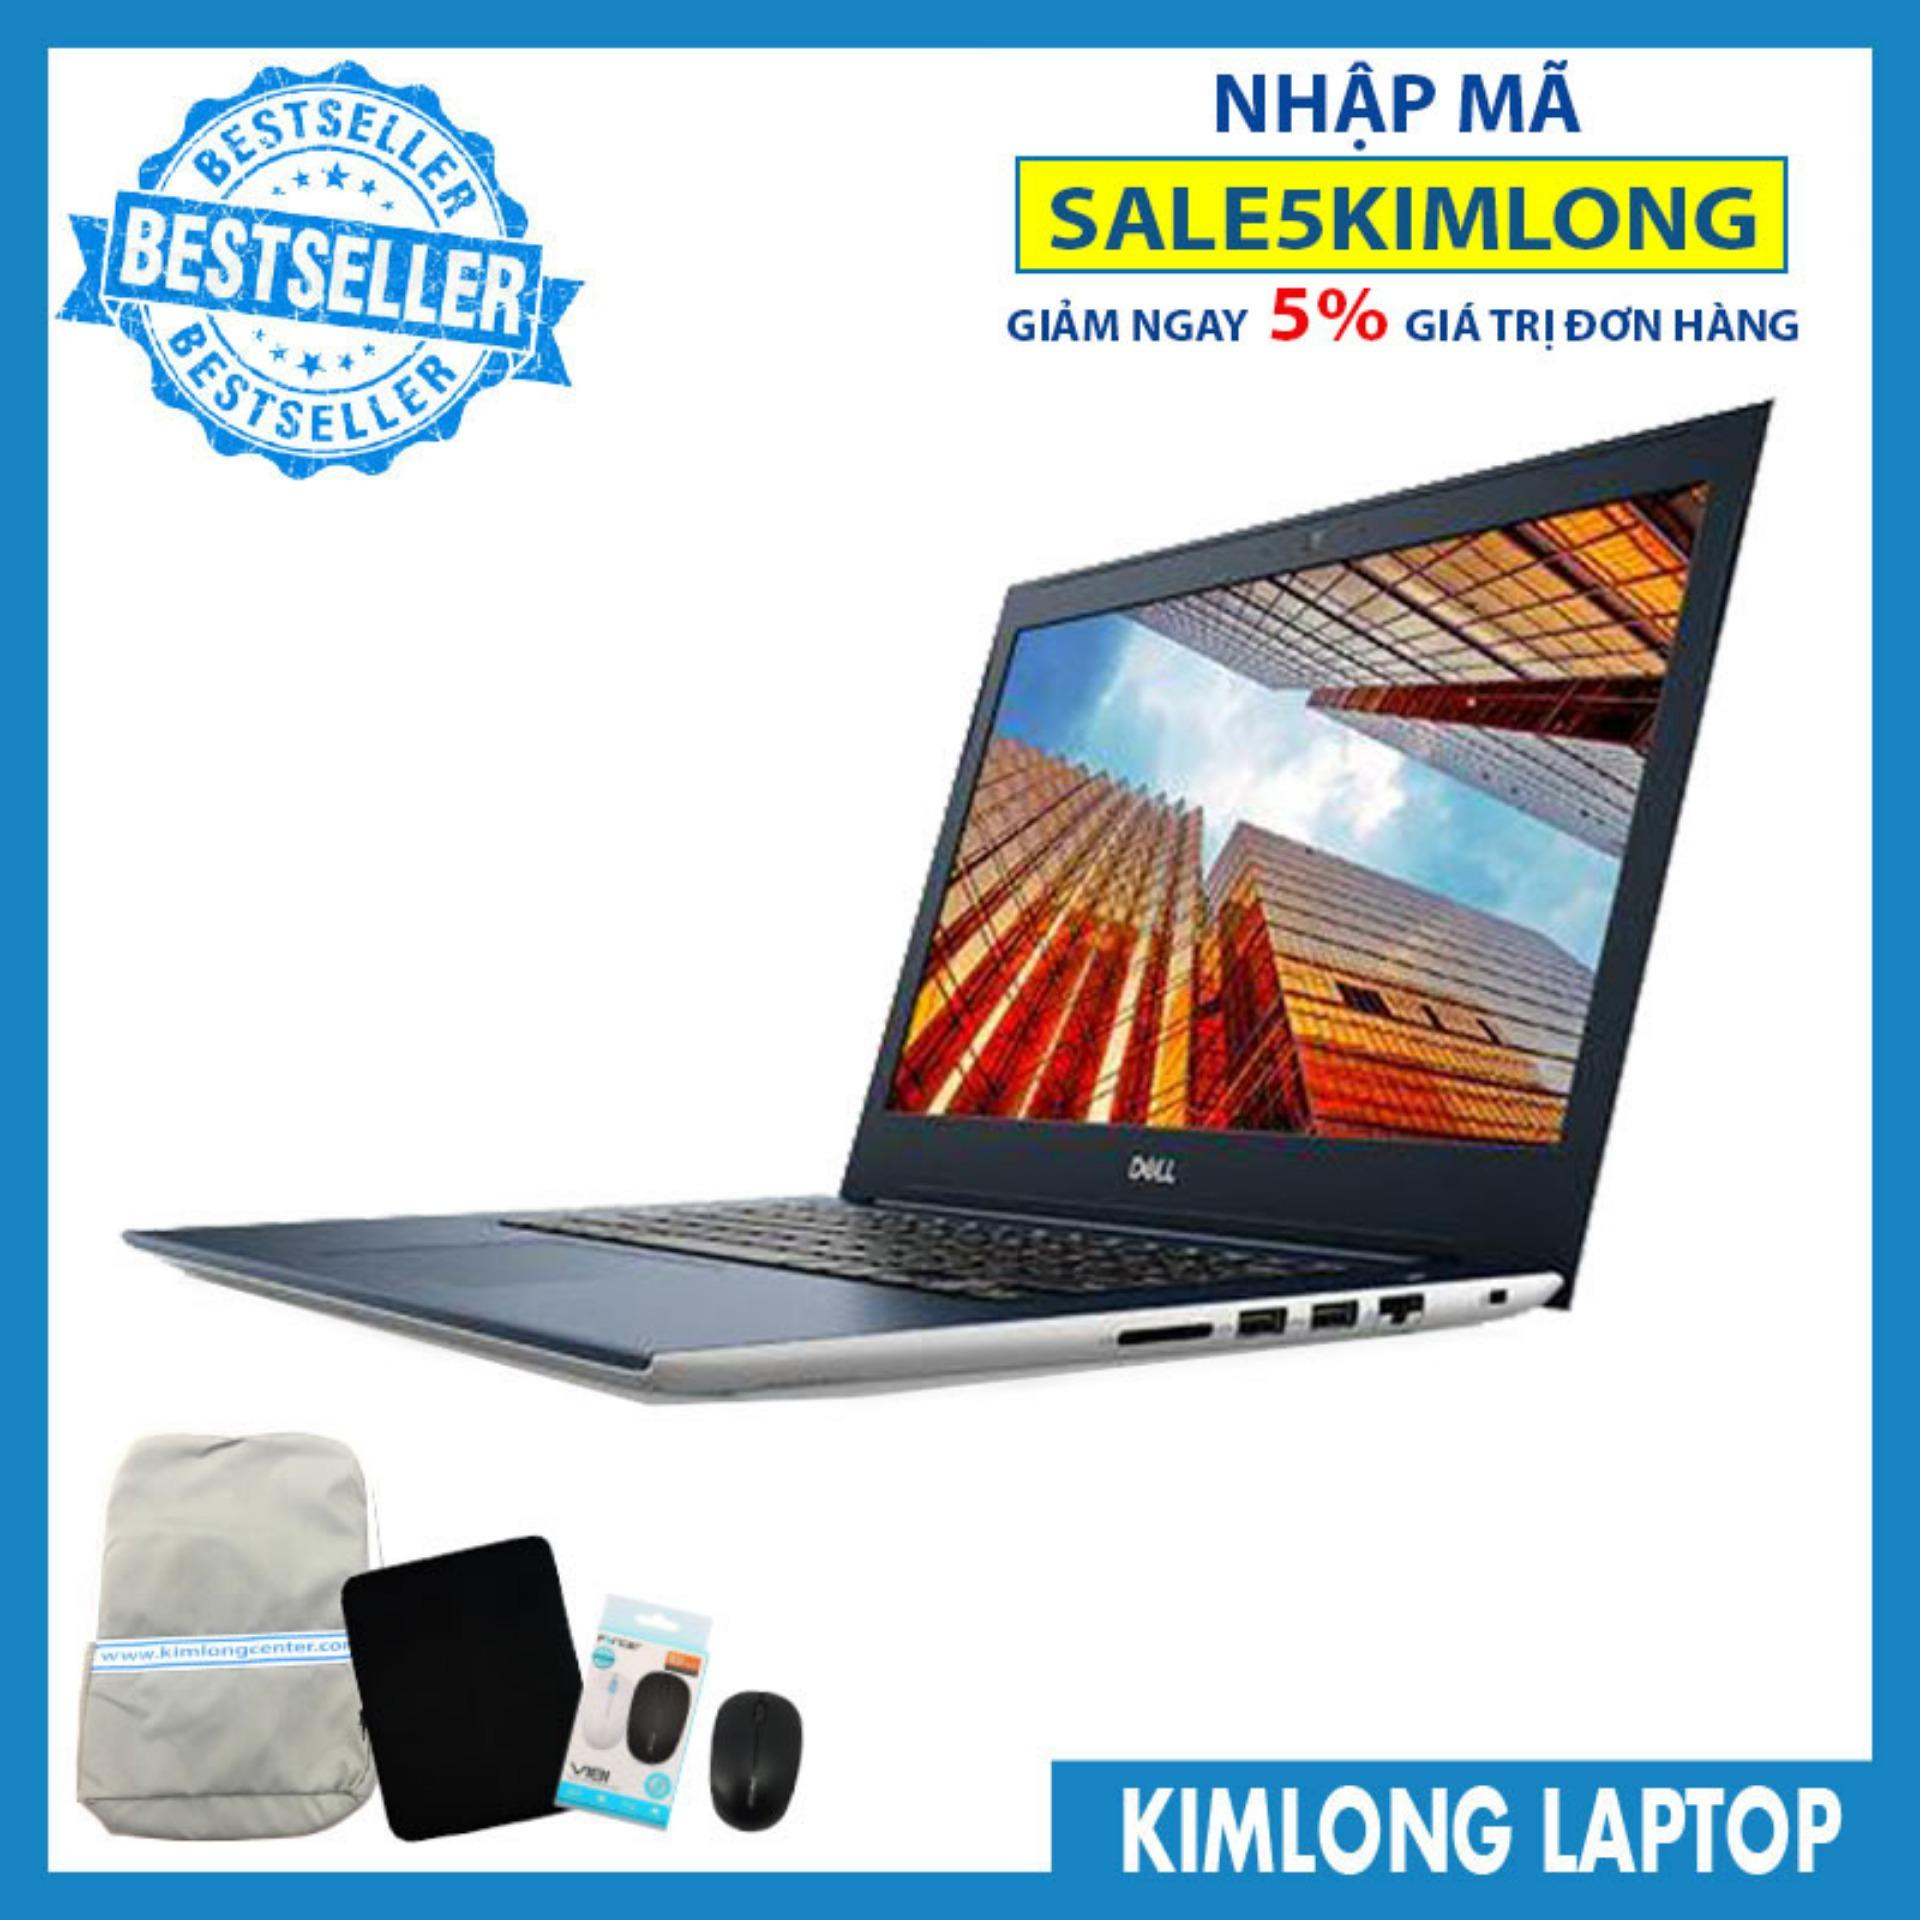 So sánh giá Laptop Dell Vostro V5471 : i7-8550U 8GB RAM 128GB SSD + 1TB HDD AMD Radeon® 530 4GB + Intel UHD Graphics 620 14″ FHD IPS Finger Print Free Dos-KimLongLaptop Tại KimLong Laptop